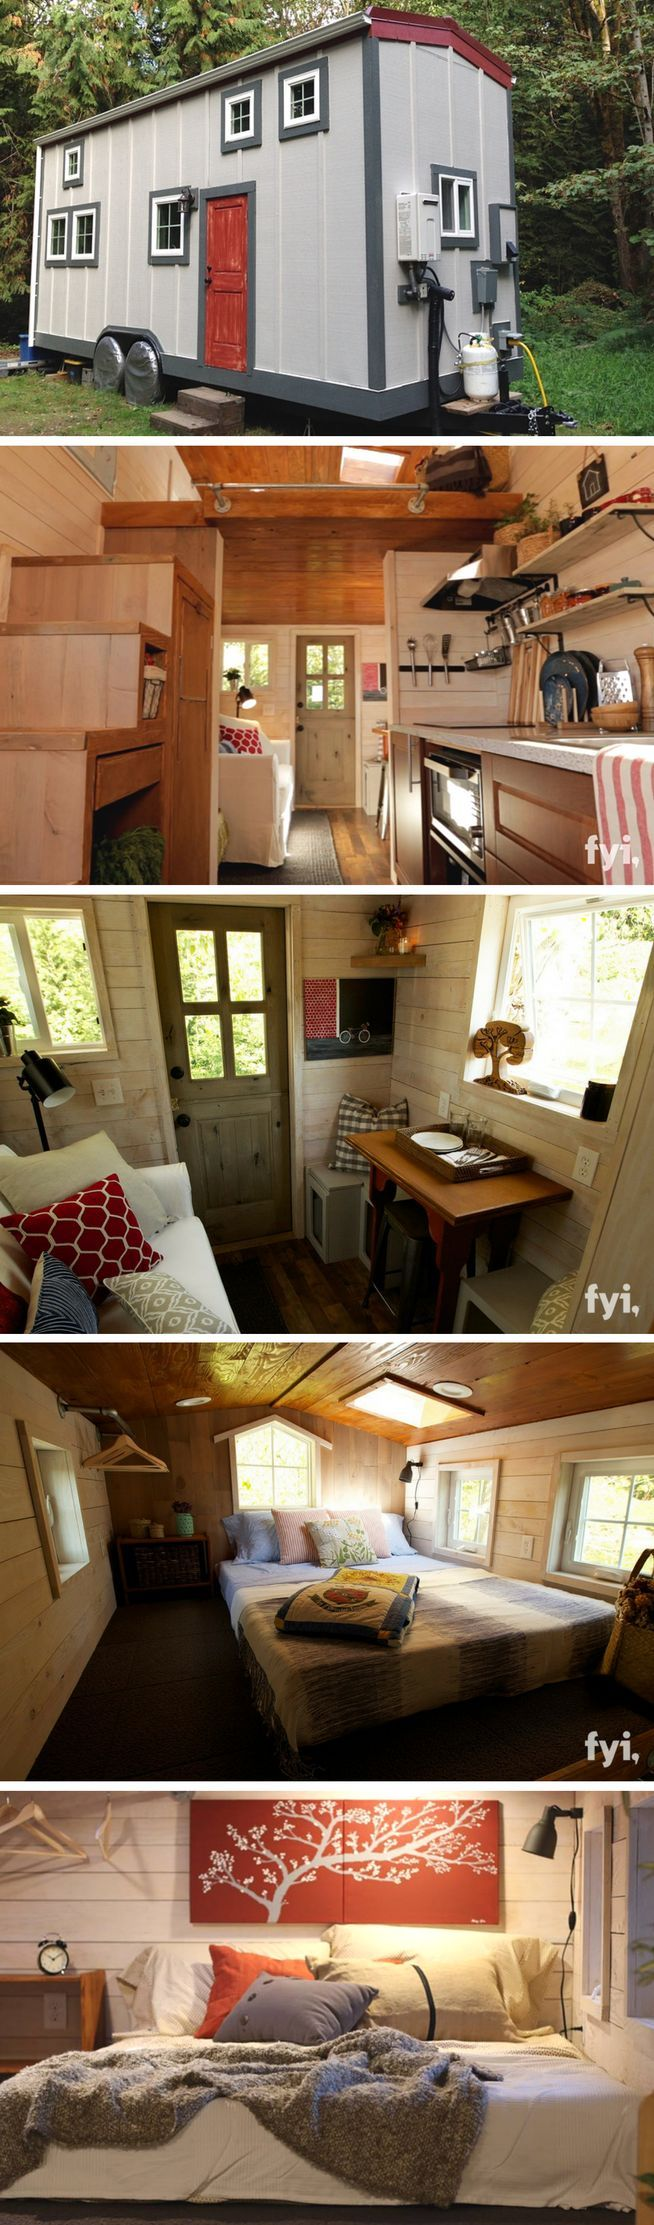 "nice The ""Barn Chic"" tiny house, featured on Tiny House Nation... by http://www.danaz-home-decor-ideas.top/tiny-homes/the-barn-chic-tiny-house-featured-on-tiny-house-nation/"